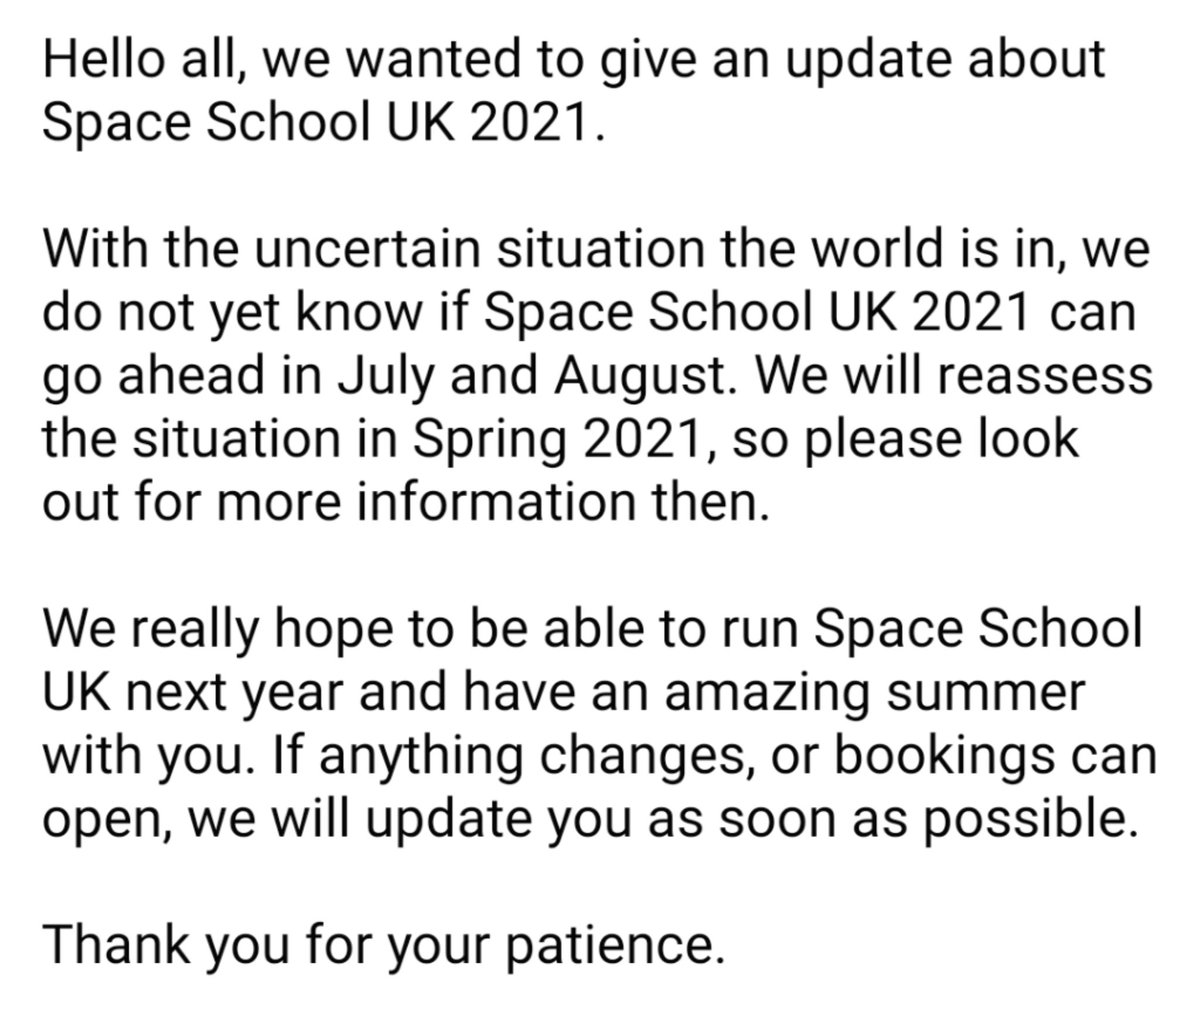 We have a short update about Space School UK 2021. Please read and share.